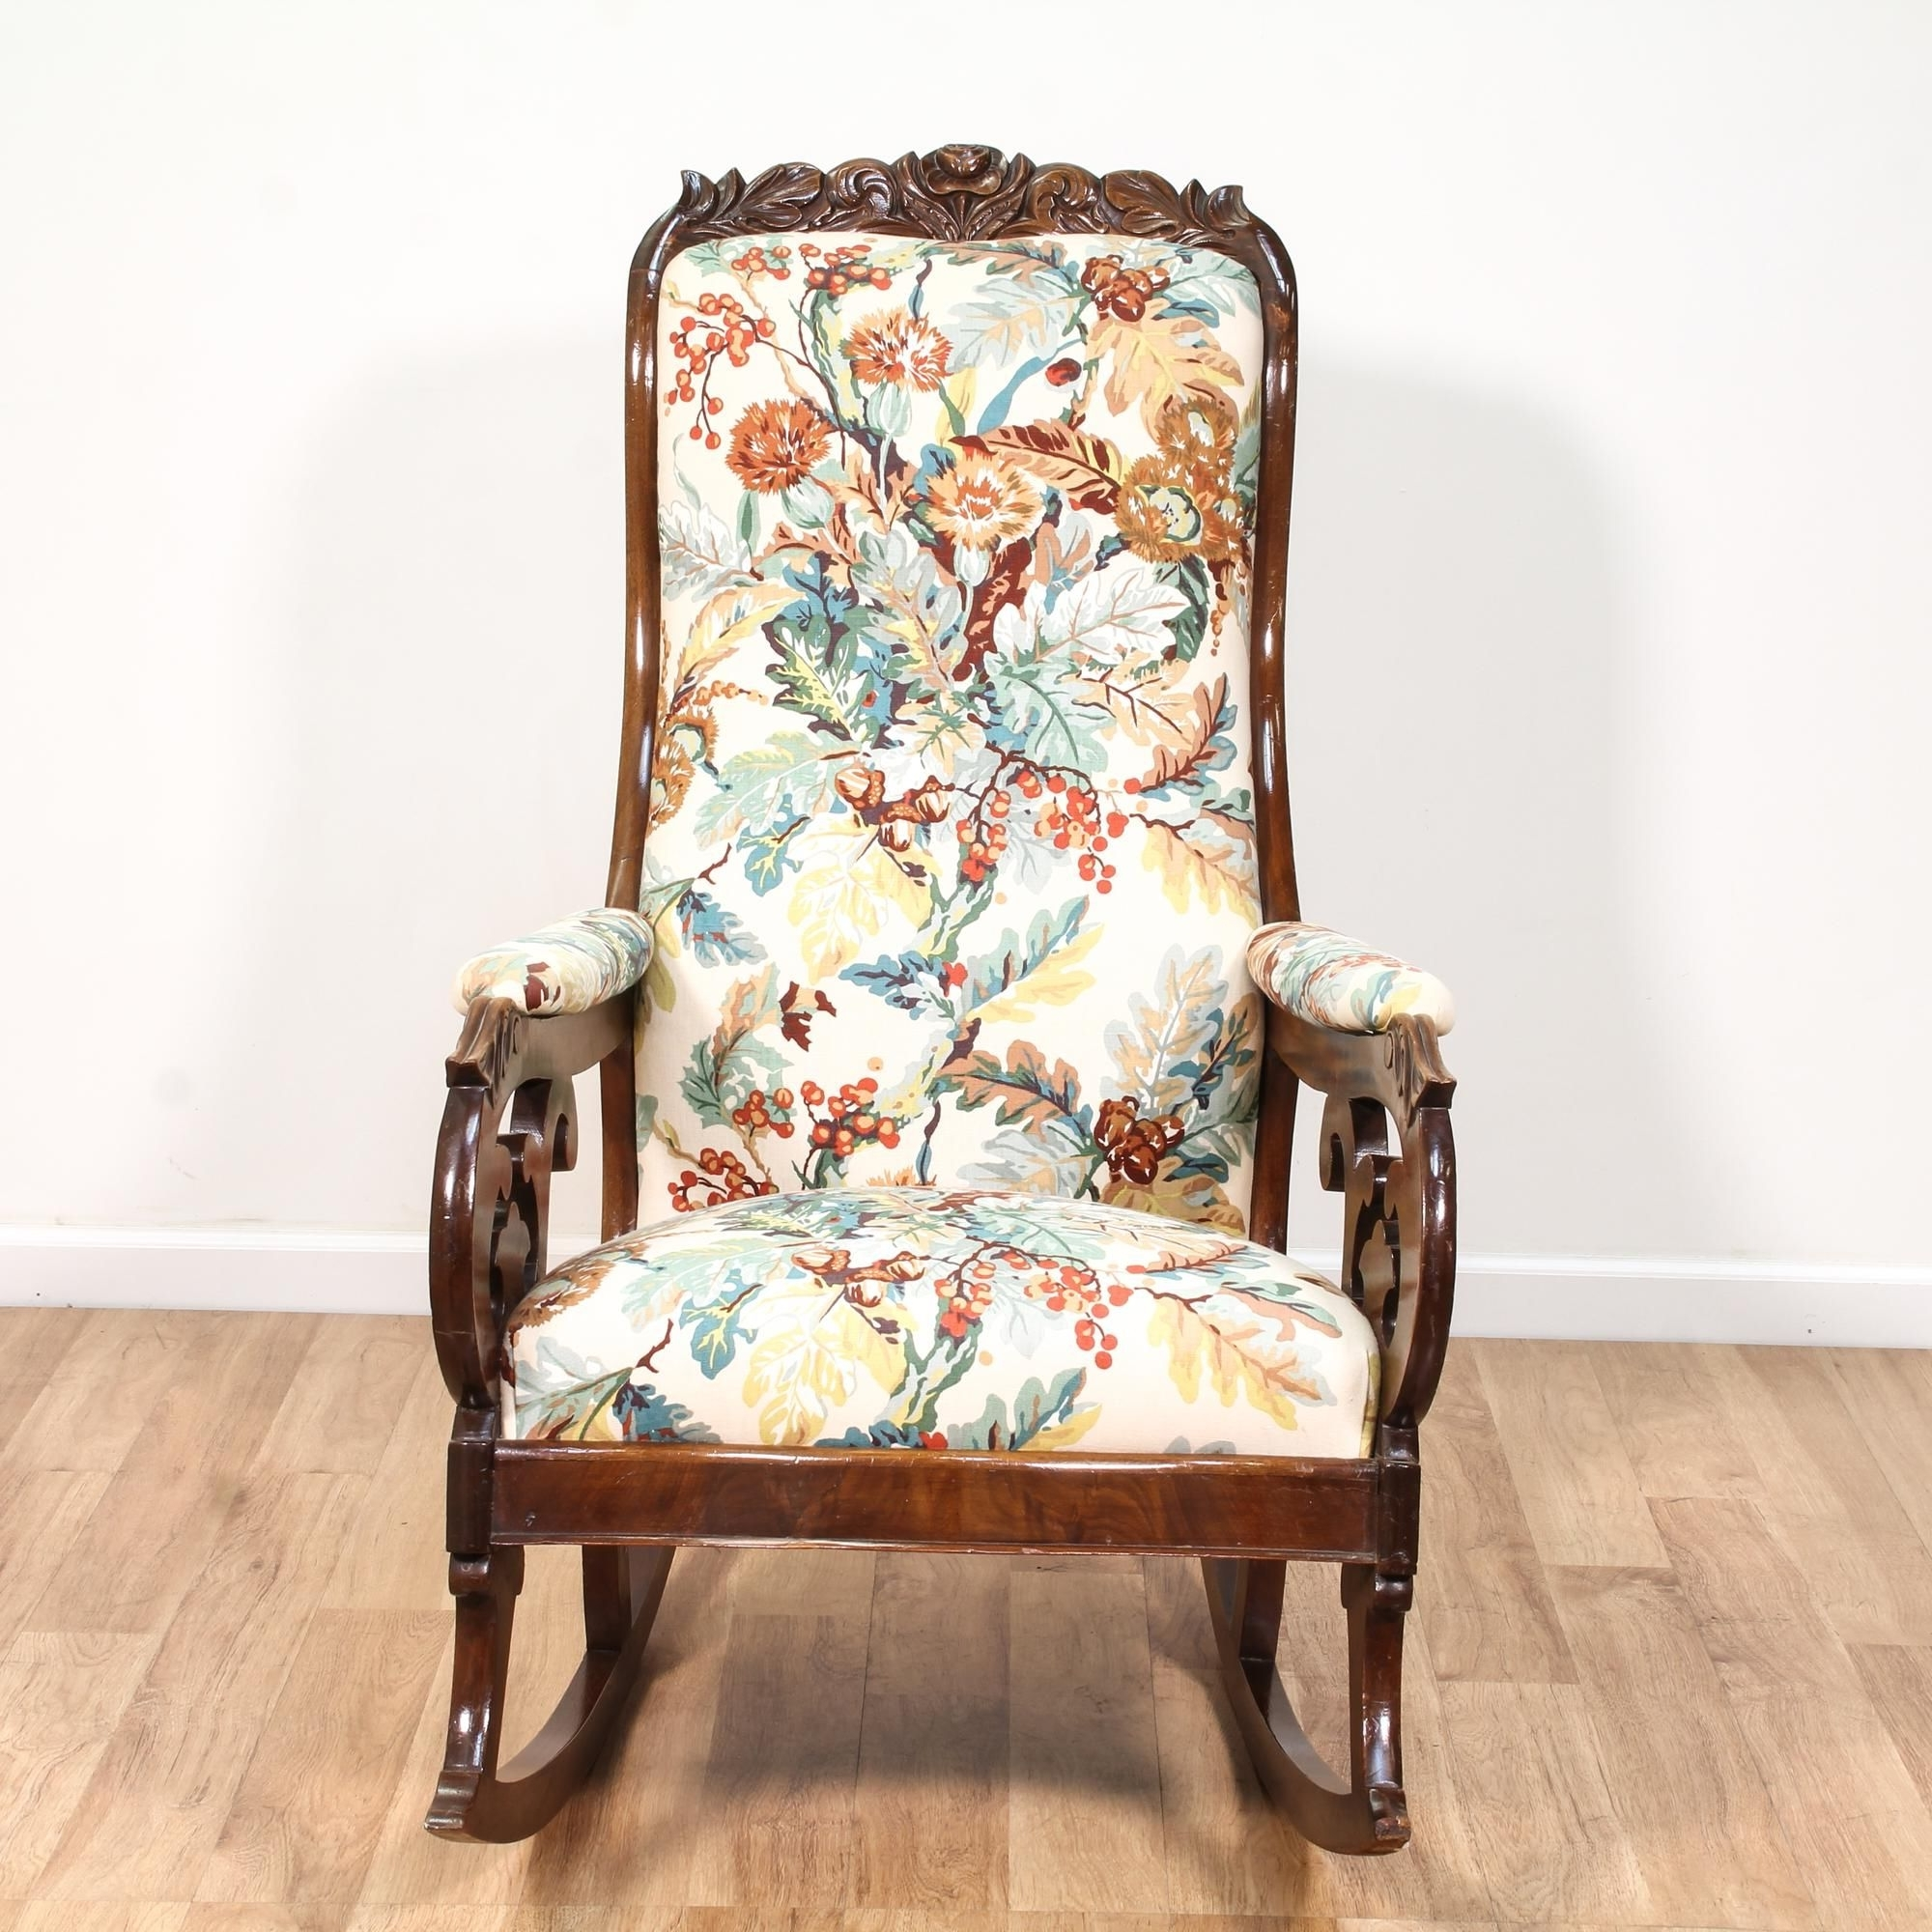 Victorian Rocking Chairs For Recent This Victorian Rocking Chair Is Featured In A Solid Wood With A (Gallery 16 of 20)